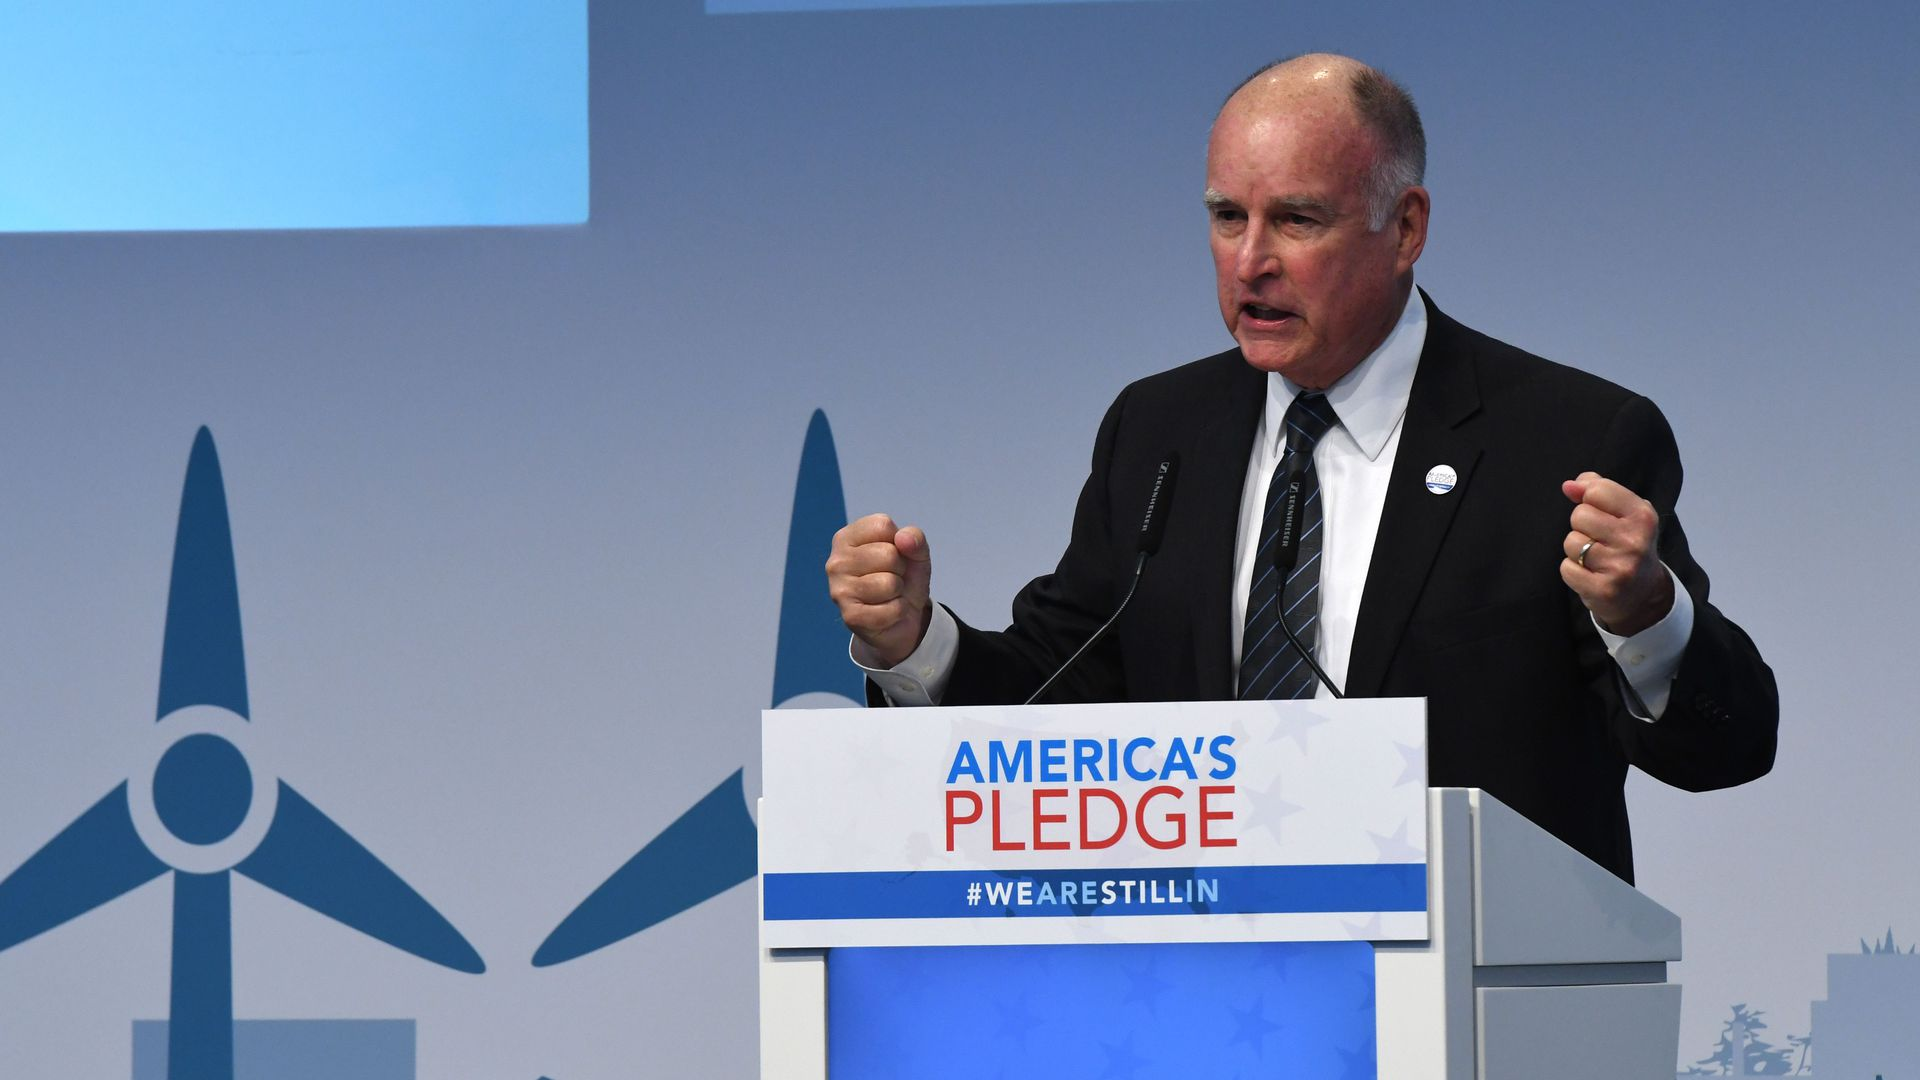 US Governor of California, Jerry Brown speaks at the launch event at the US climate action center on November 11, 2017 during the COP23 United Nations Climate Change Conference.